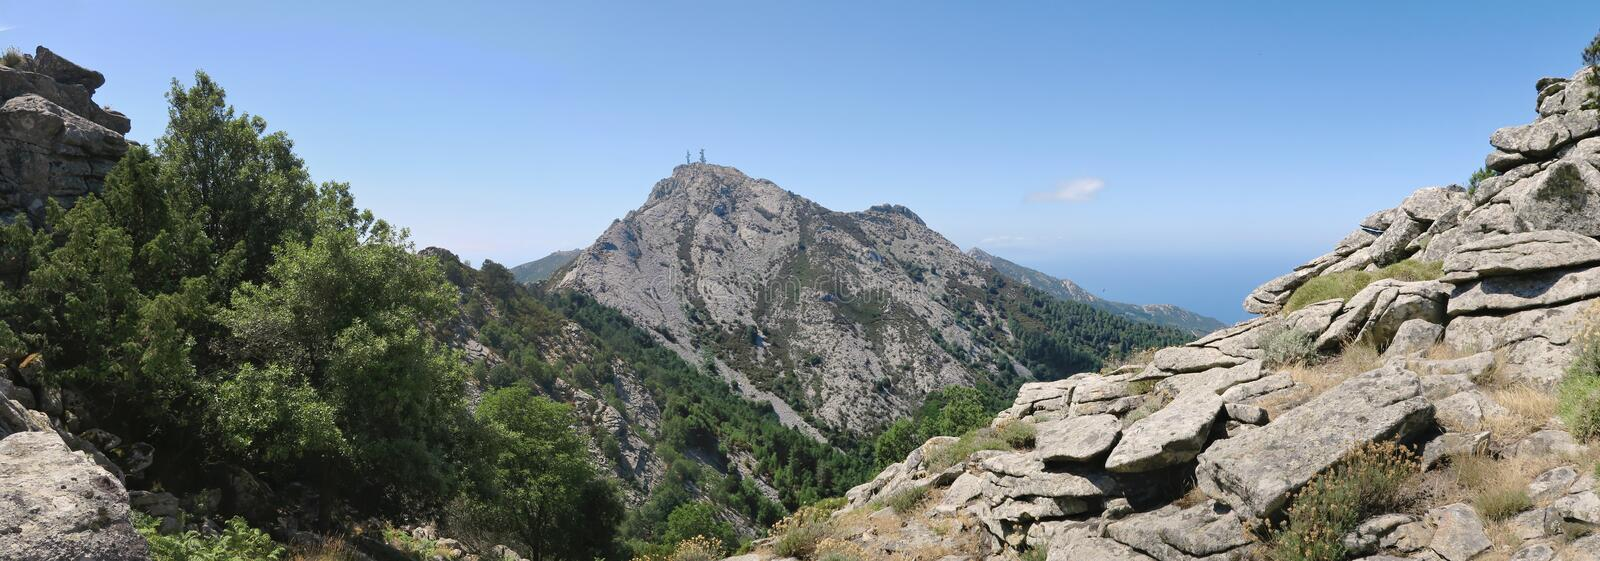 Monte Capanne peak from the east side on the island Elba royalty free stock photos